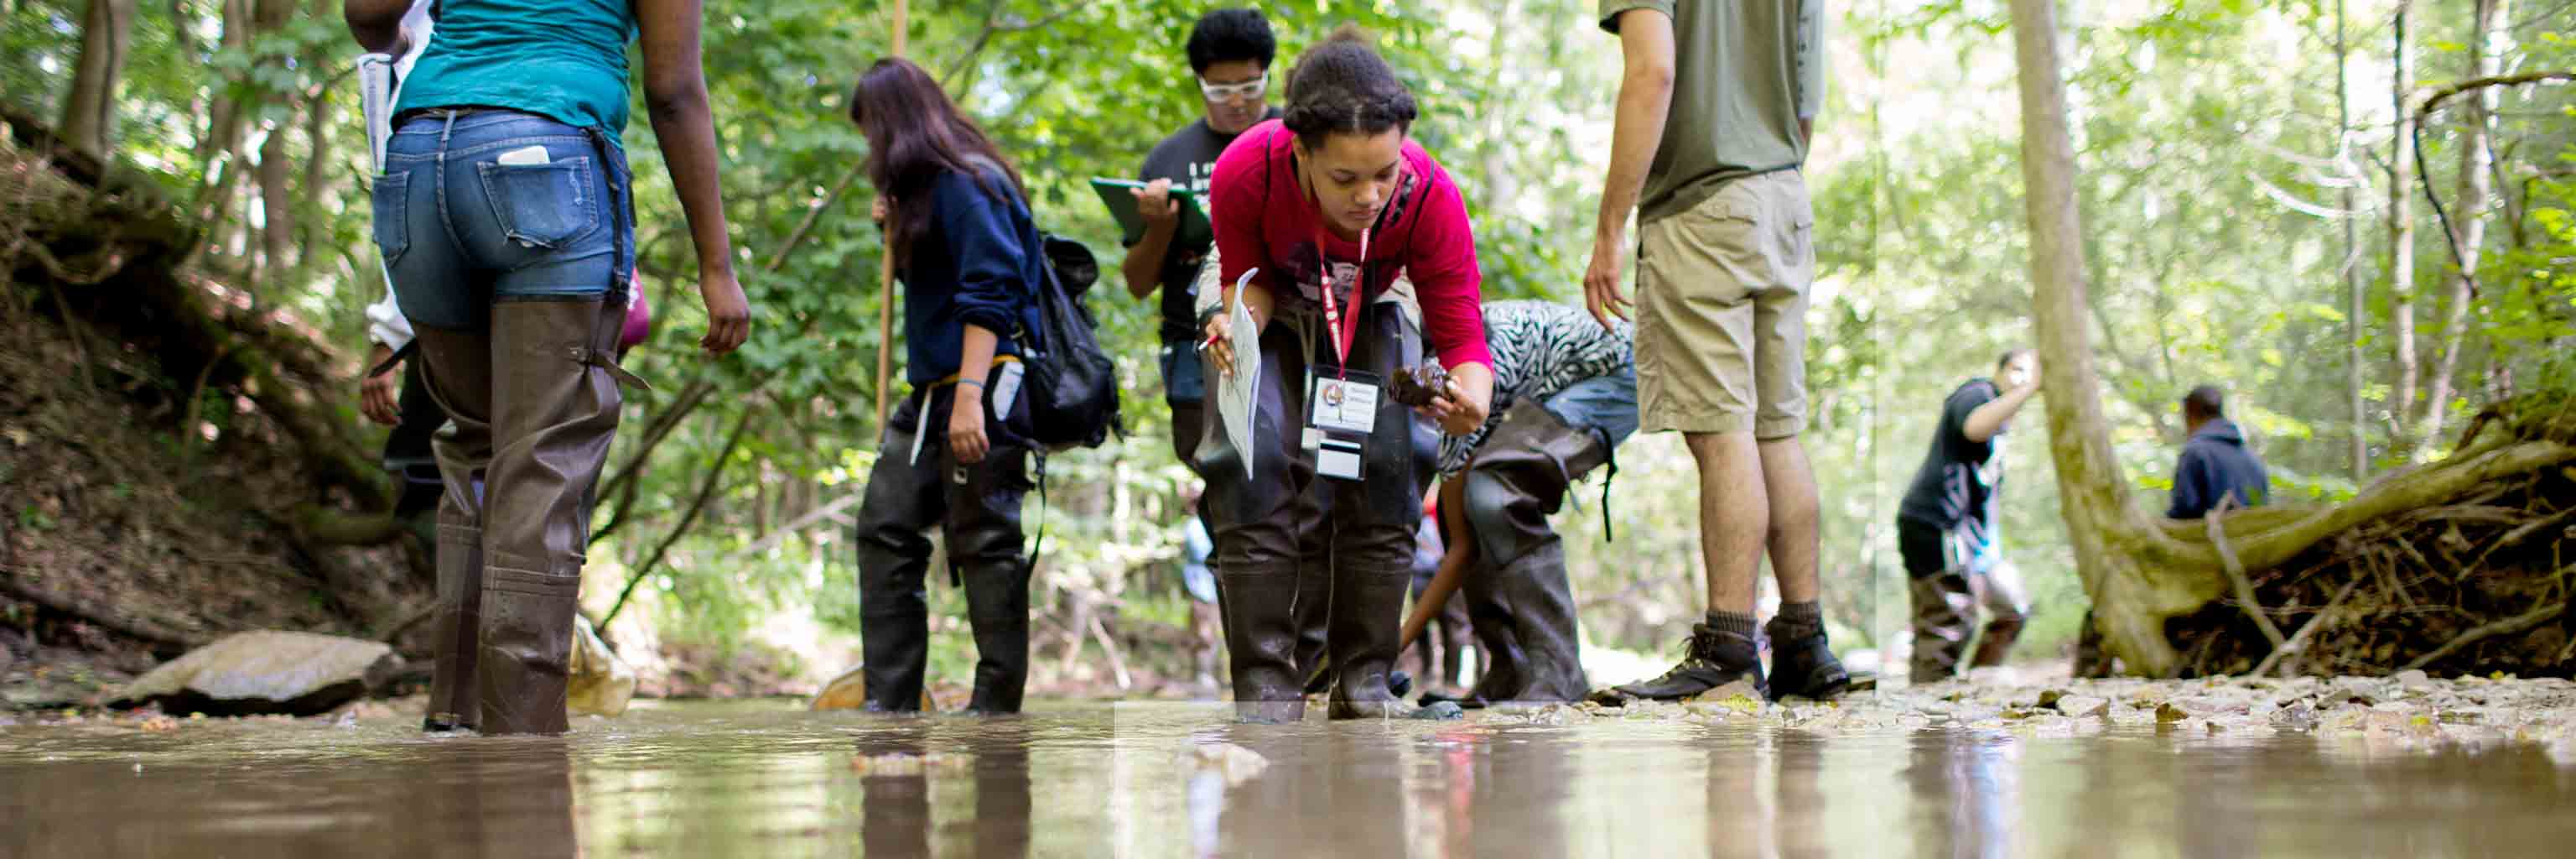 Students in wading boots work on a project in a stream.